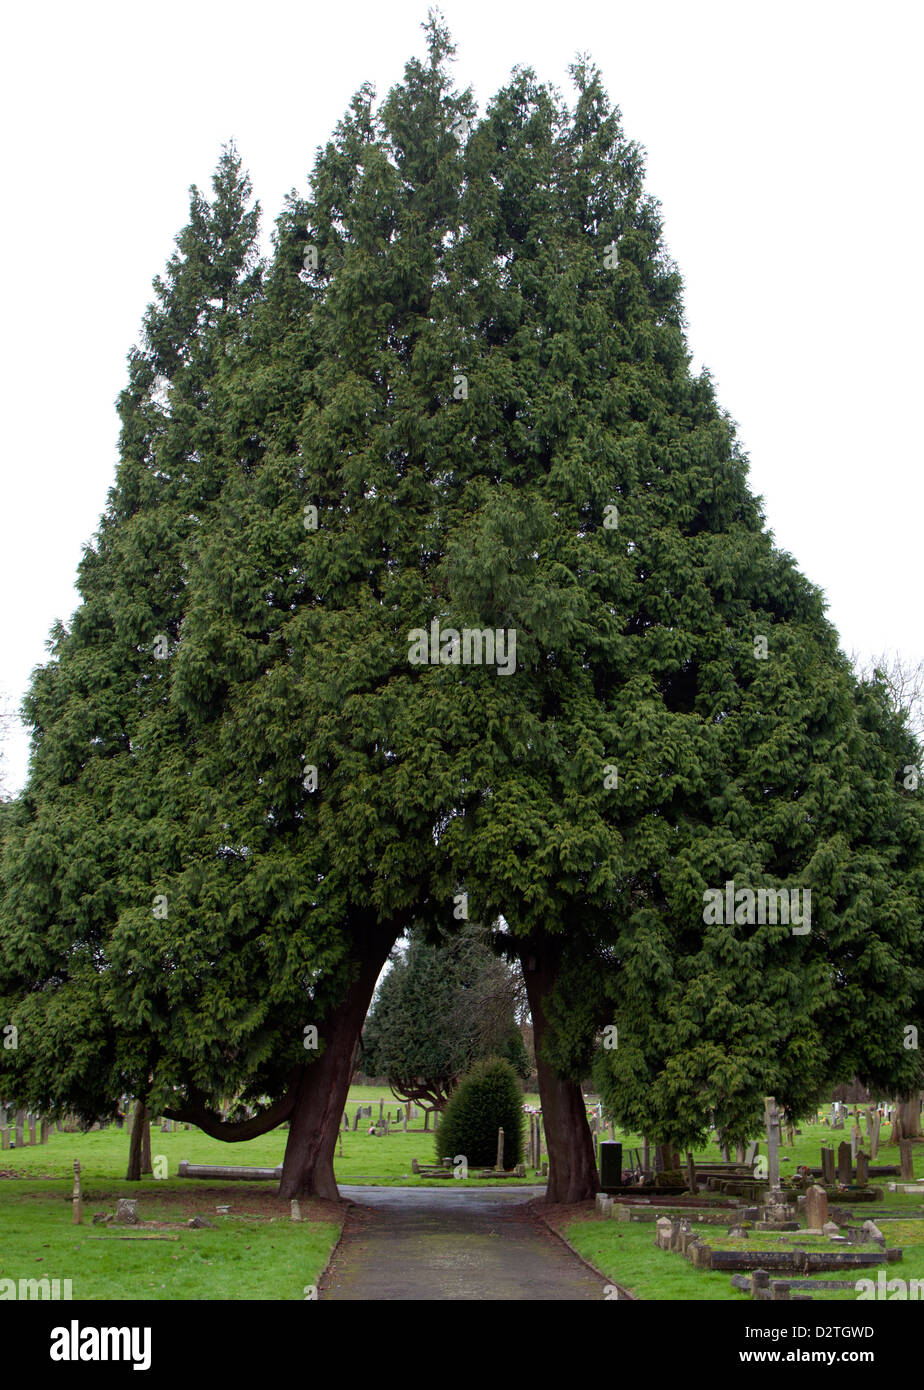 Two conifer trees forming archway - Stock Image